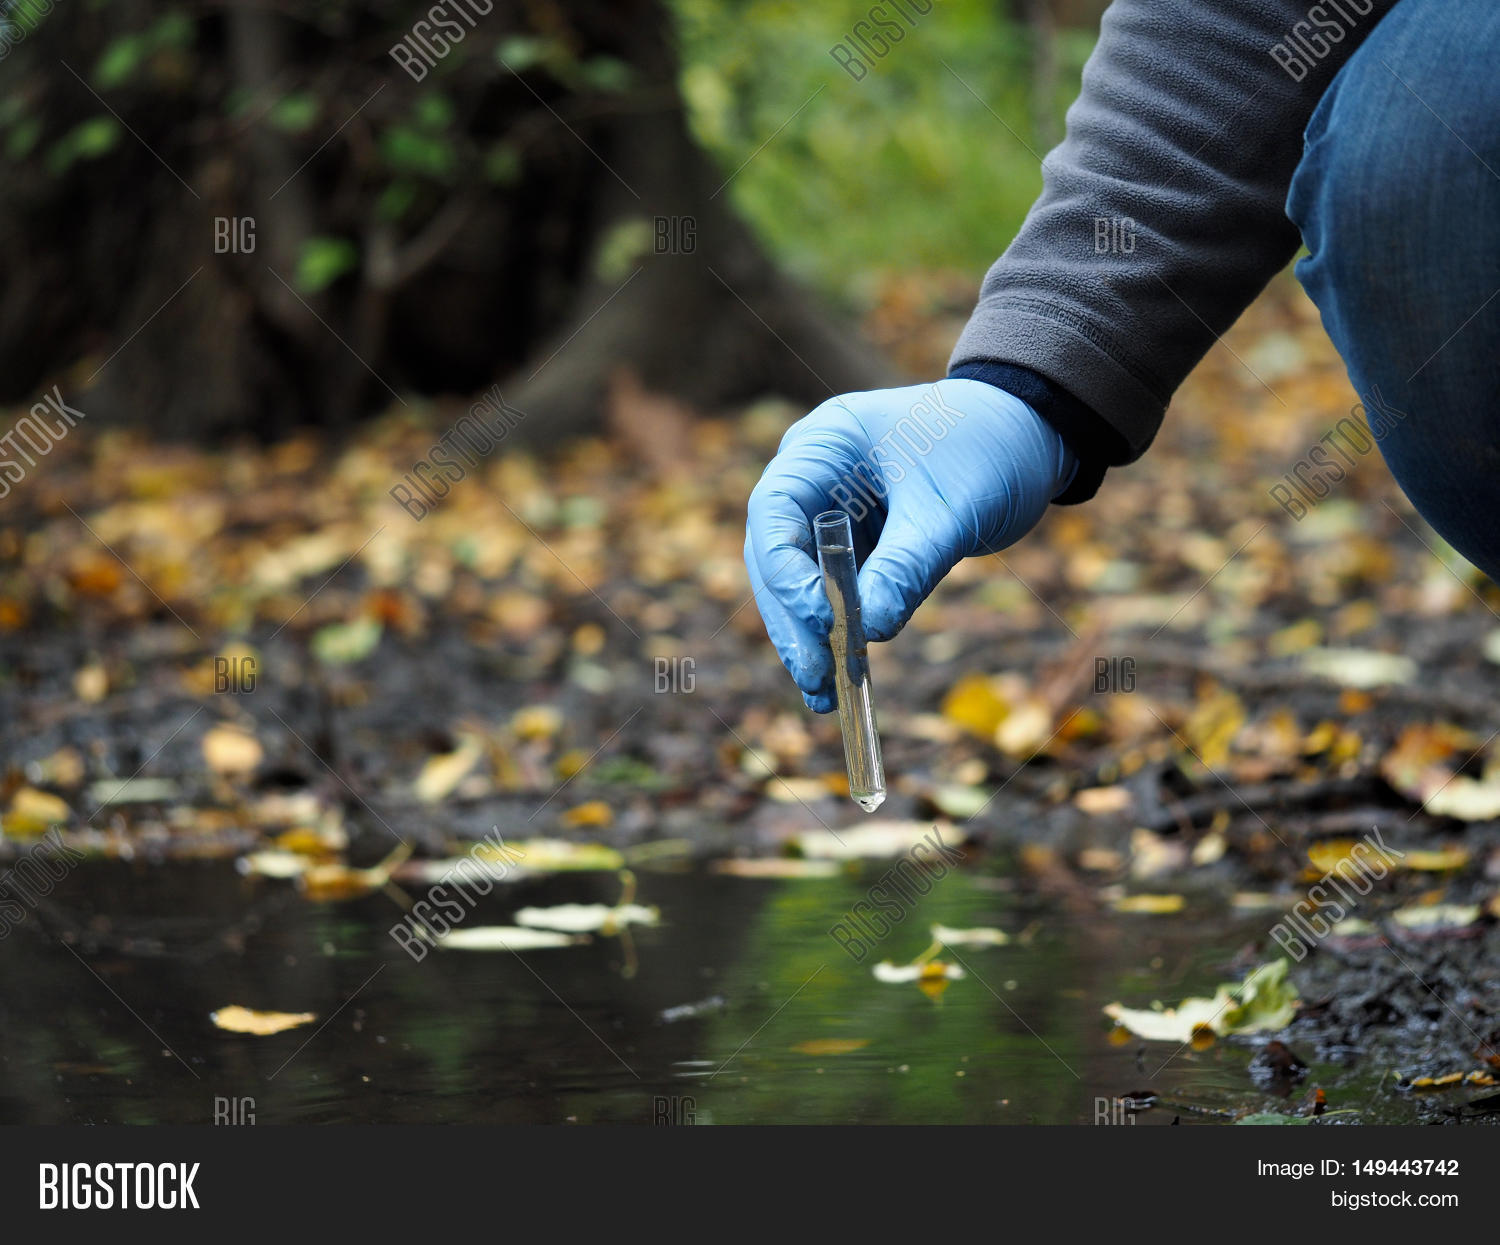 Water Sample. Hand In Glove Collects Water From A Puddle In A Test ...